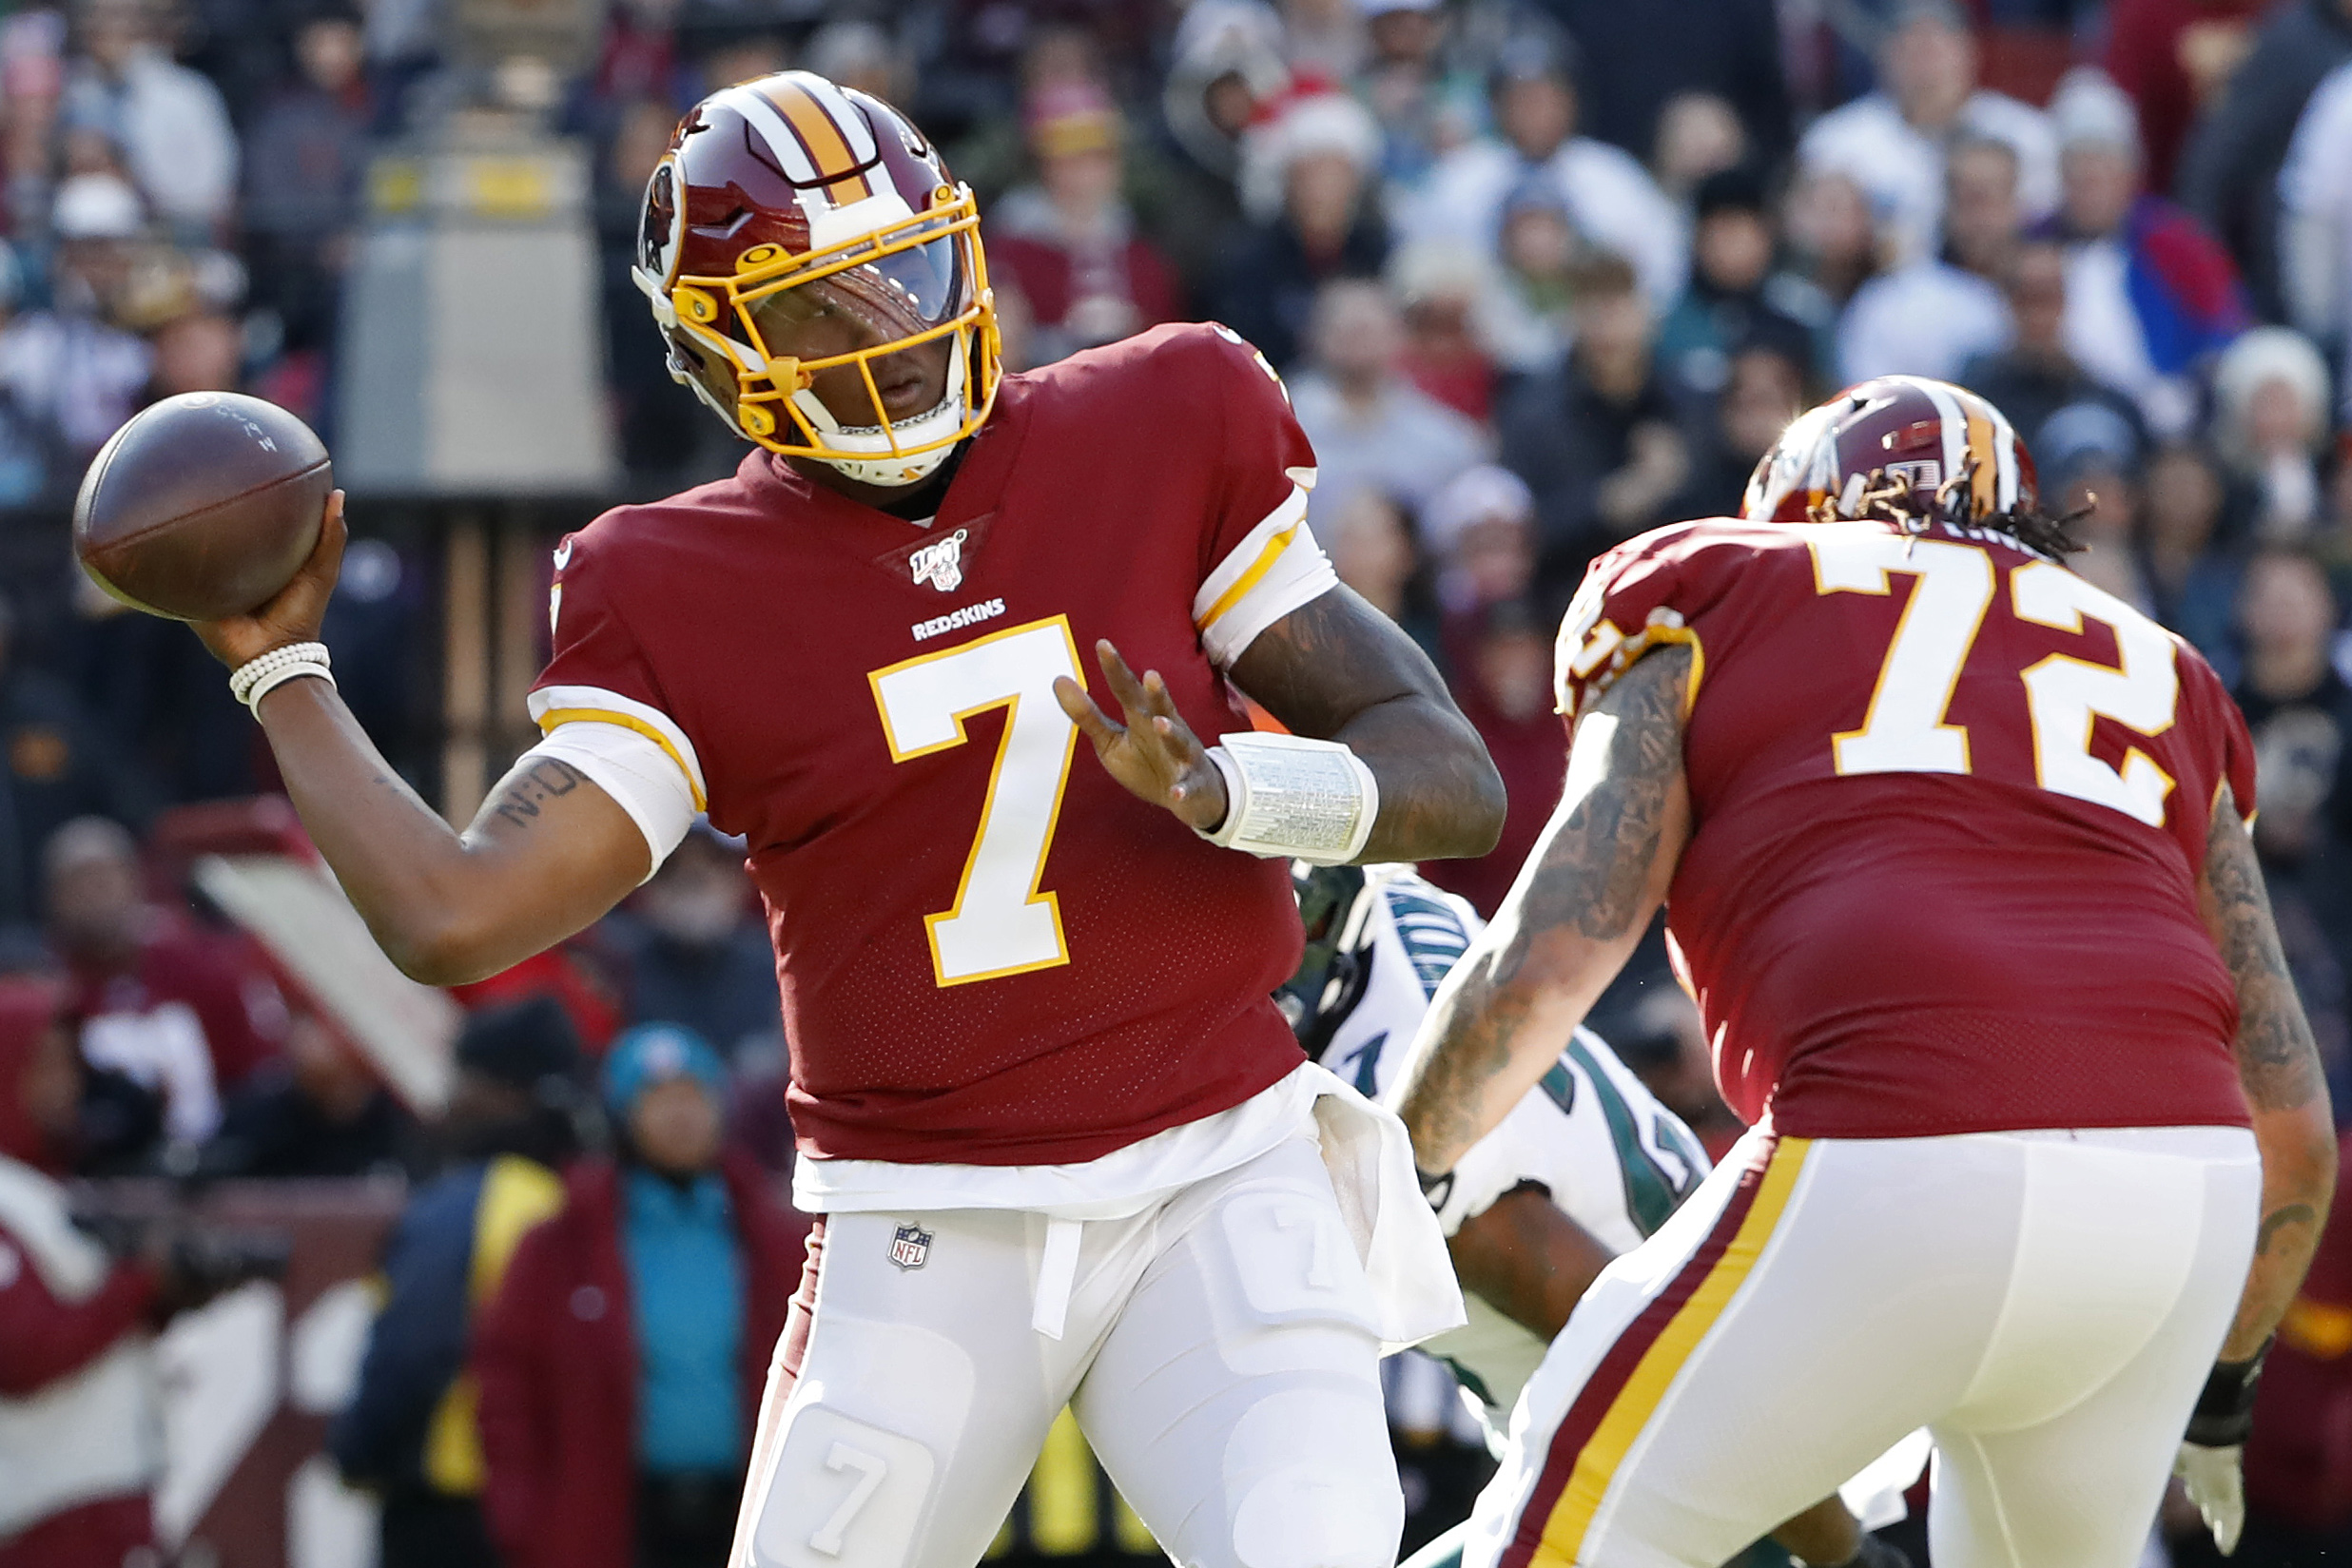 Washington Redskins quarterback Dwayne Haskins passes the ball as Philadelphia Eagles strong safety Malcolm Jenkins chases in the first quarter at FedExField